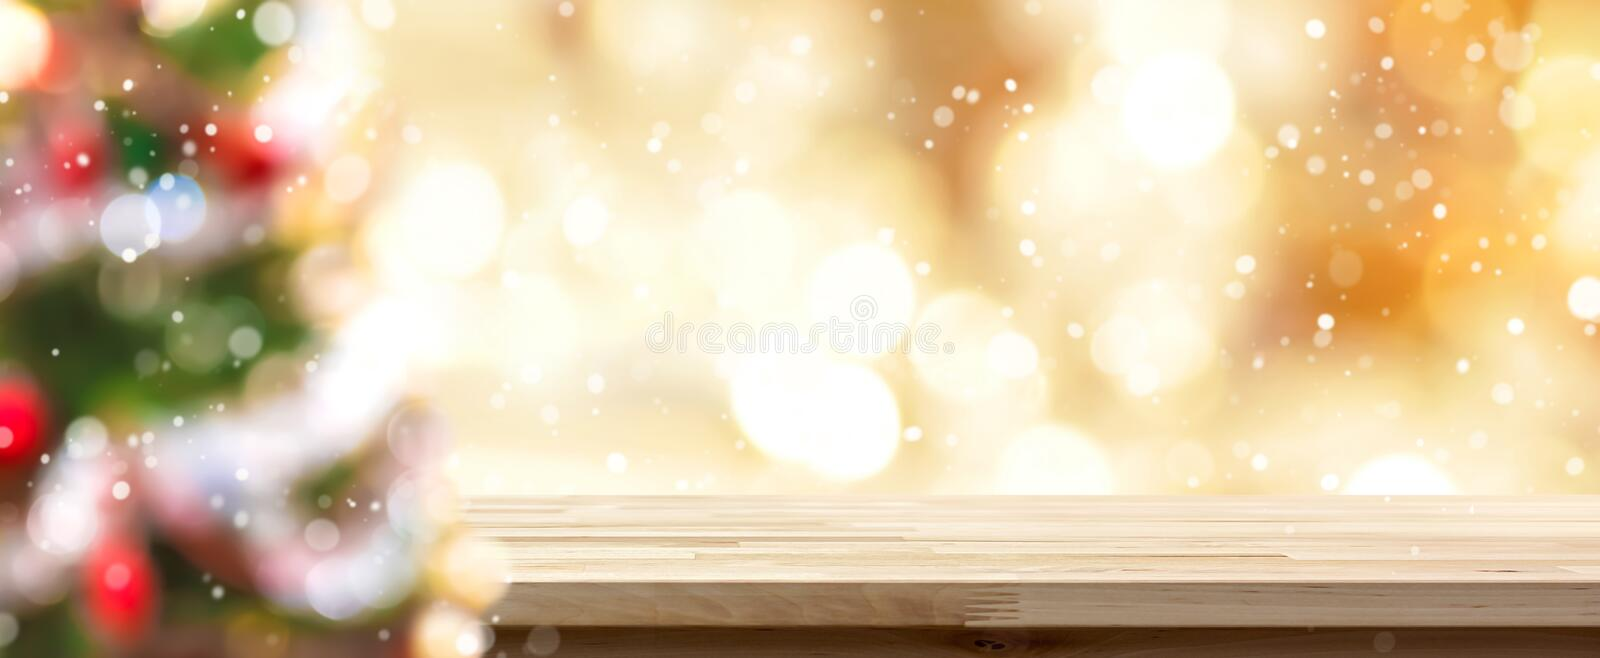 Blur colorful Christmas tree and gold bokeh with table top stock photo